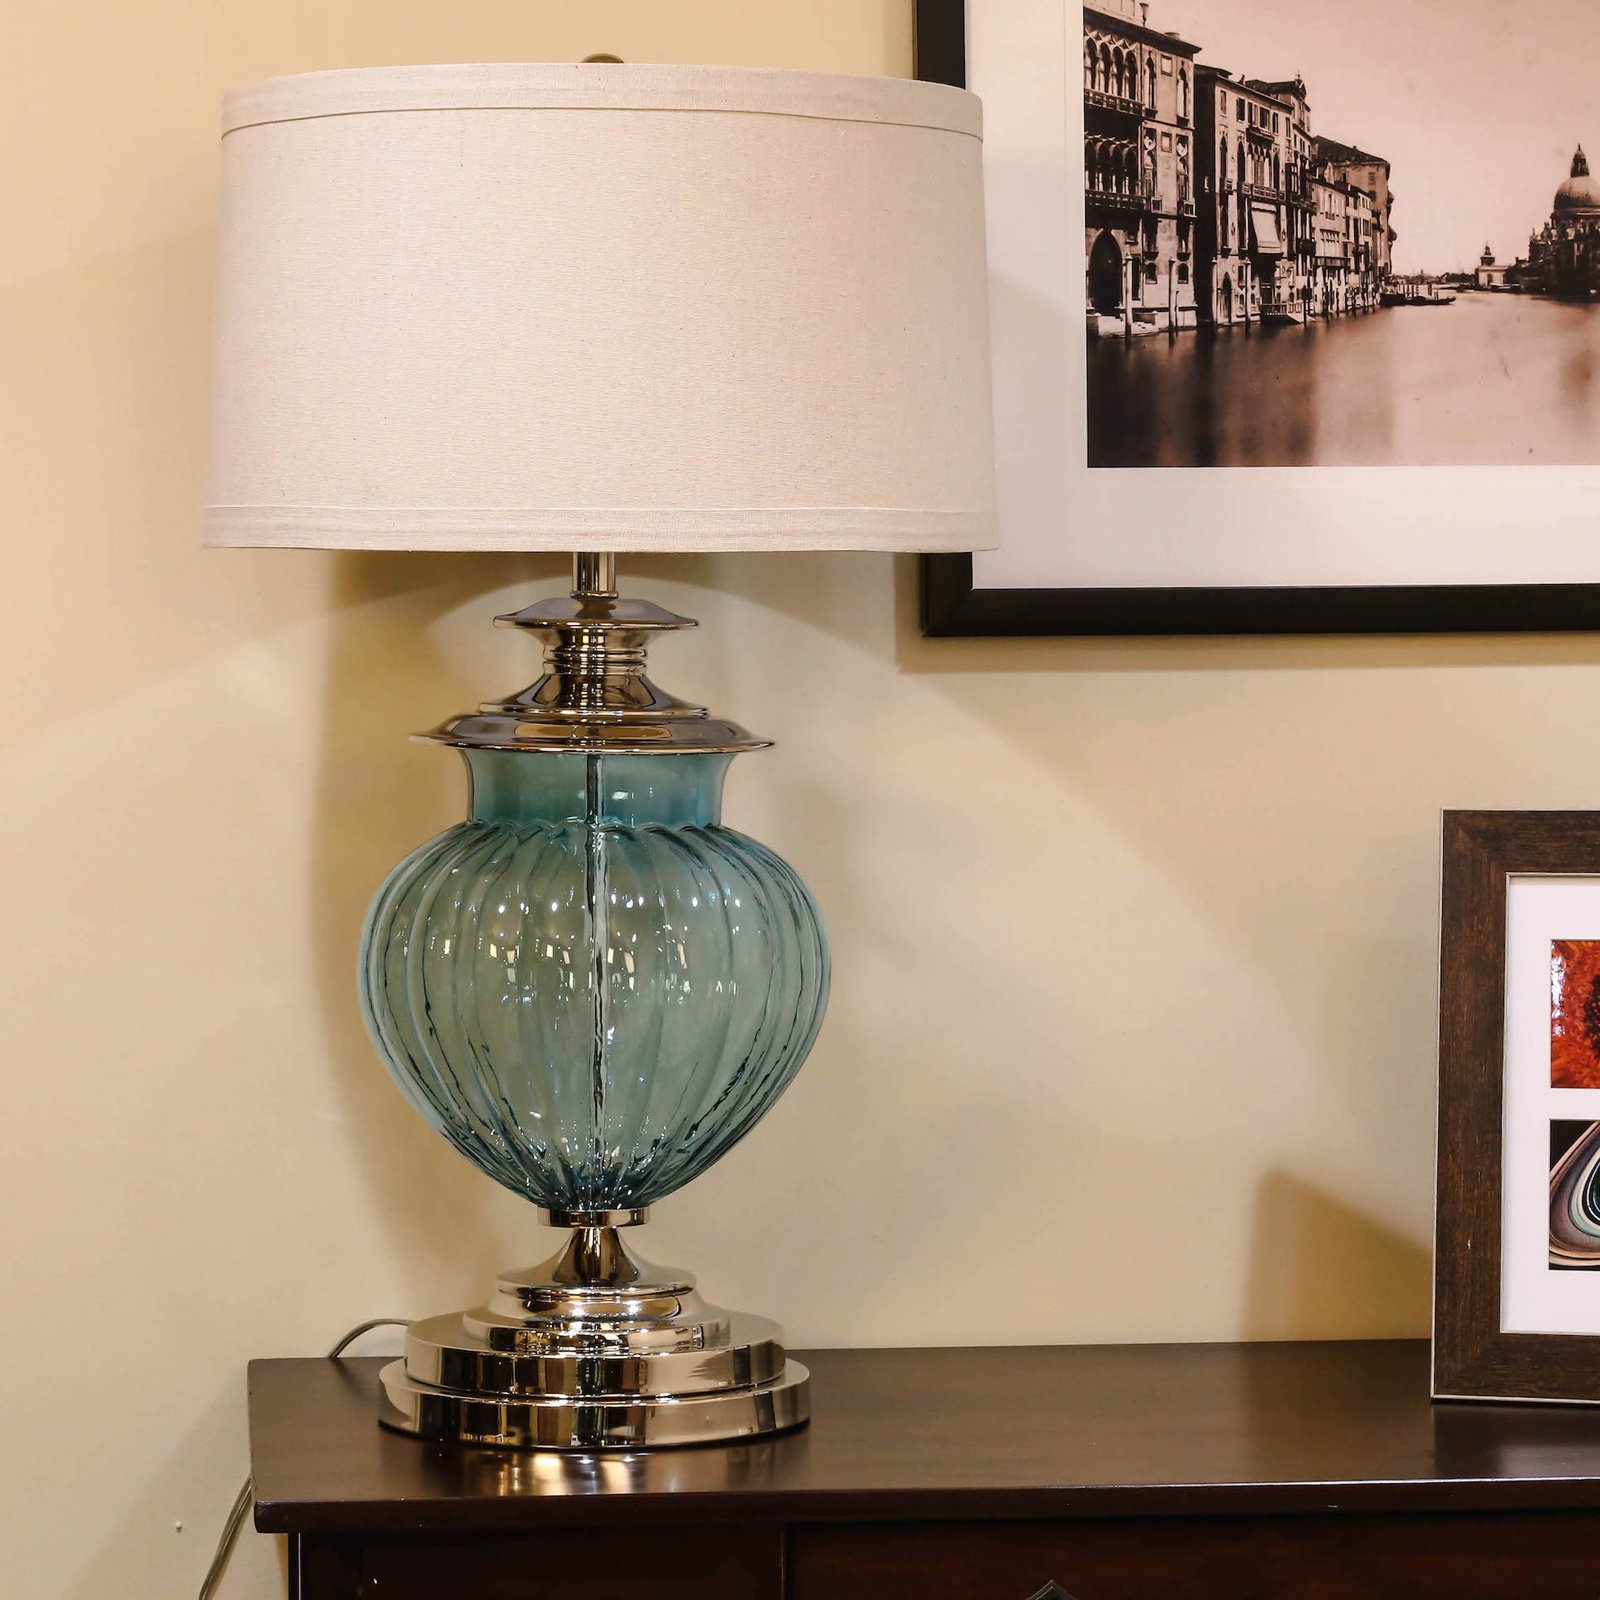 Bombay BH-SLE-20086462 Urn Table Lamp